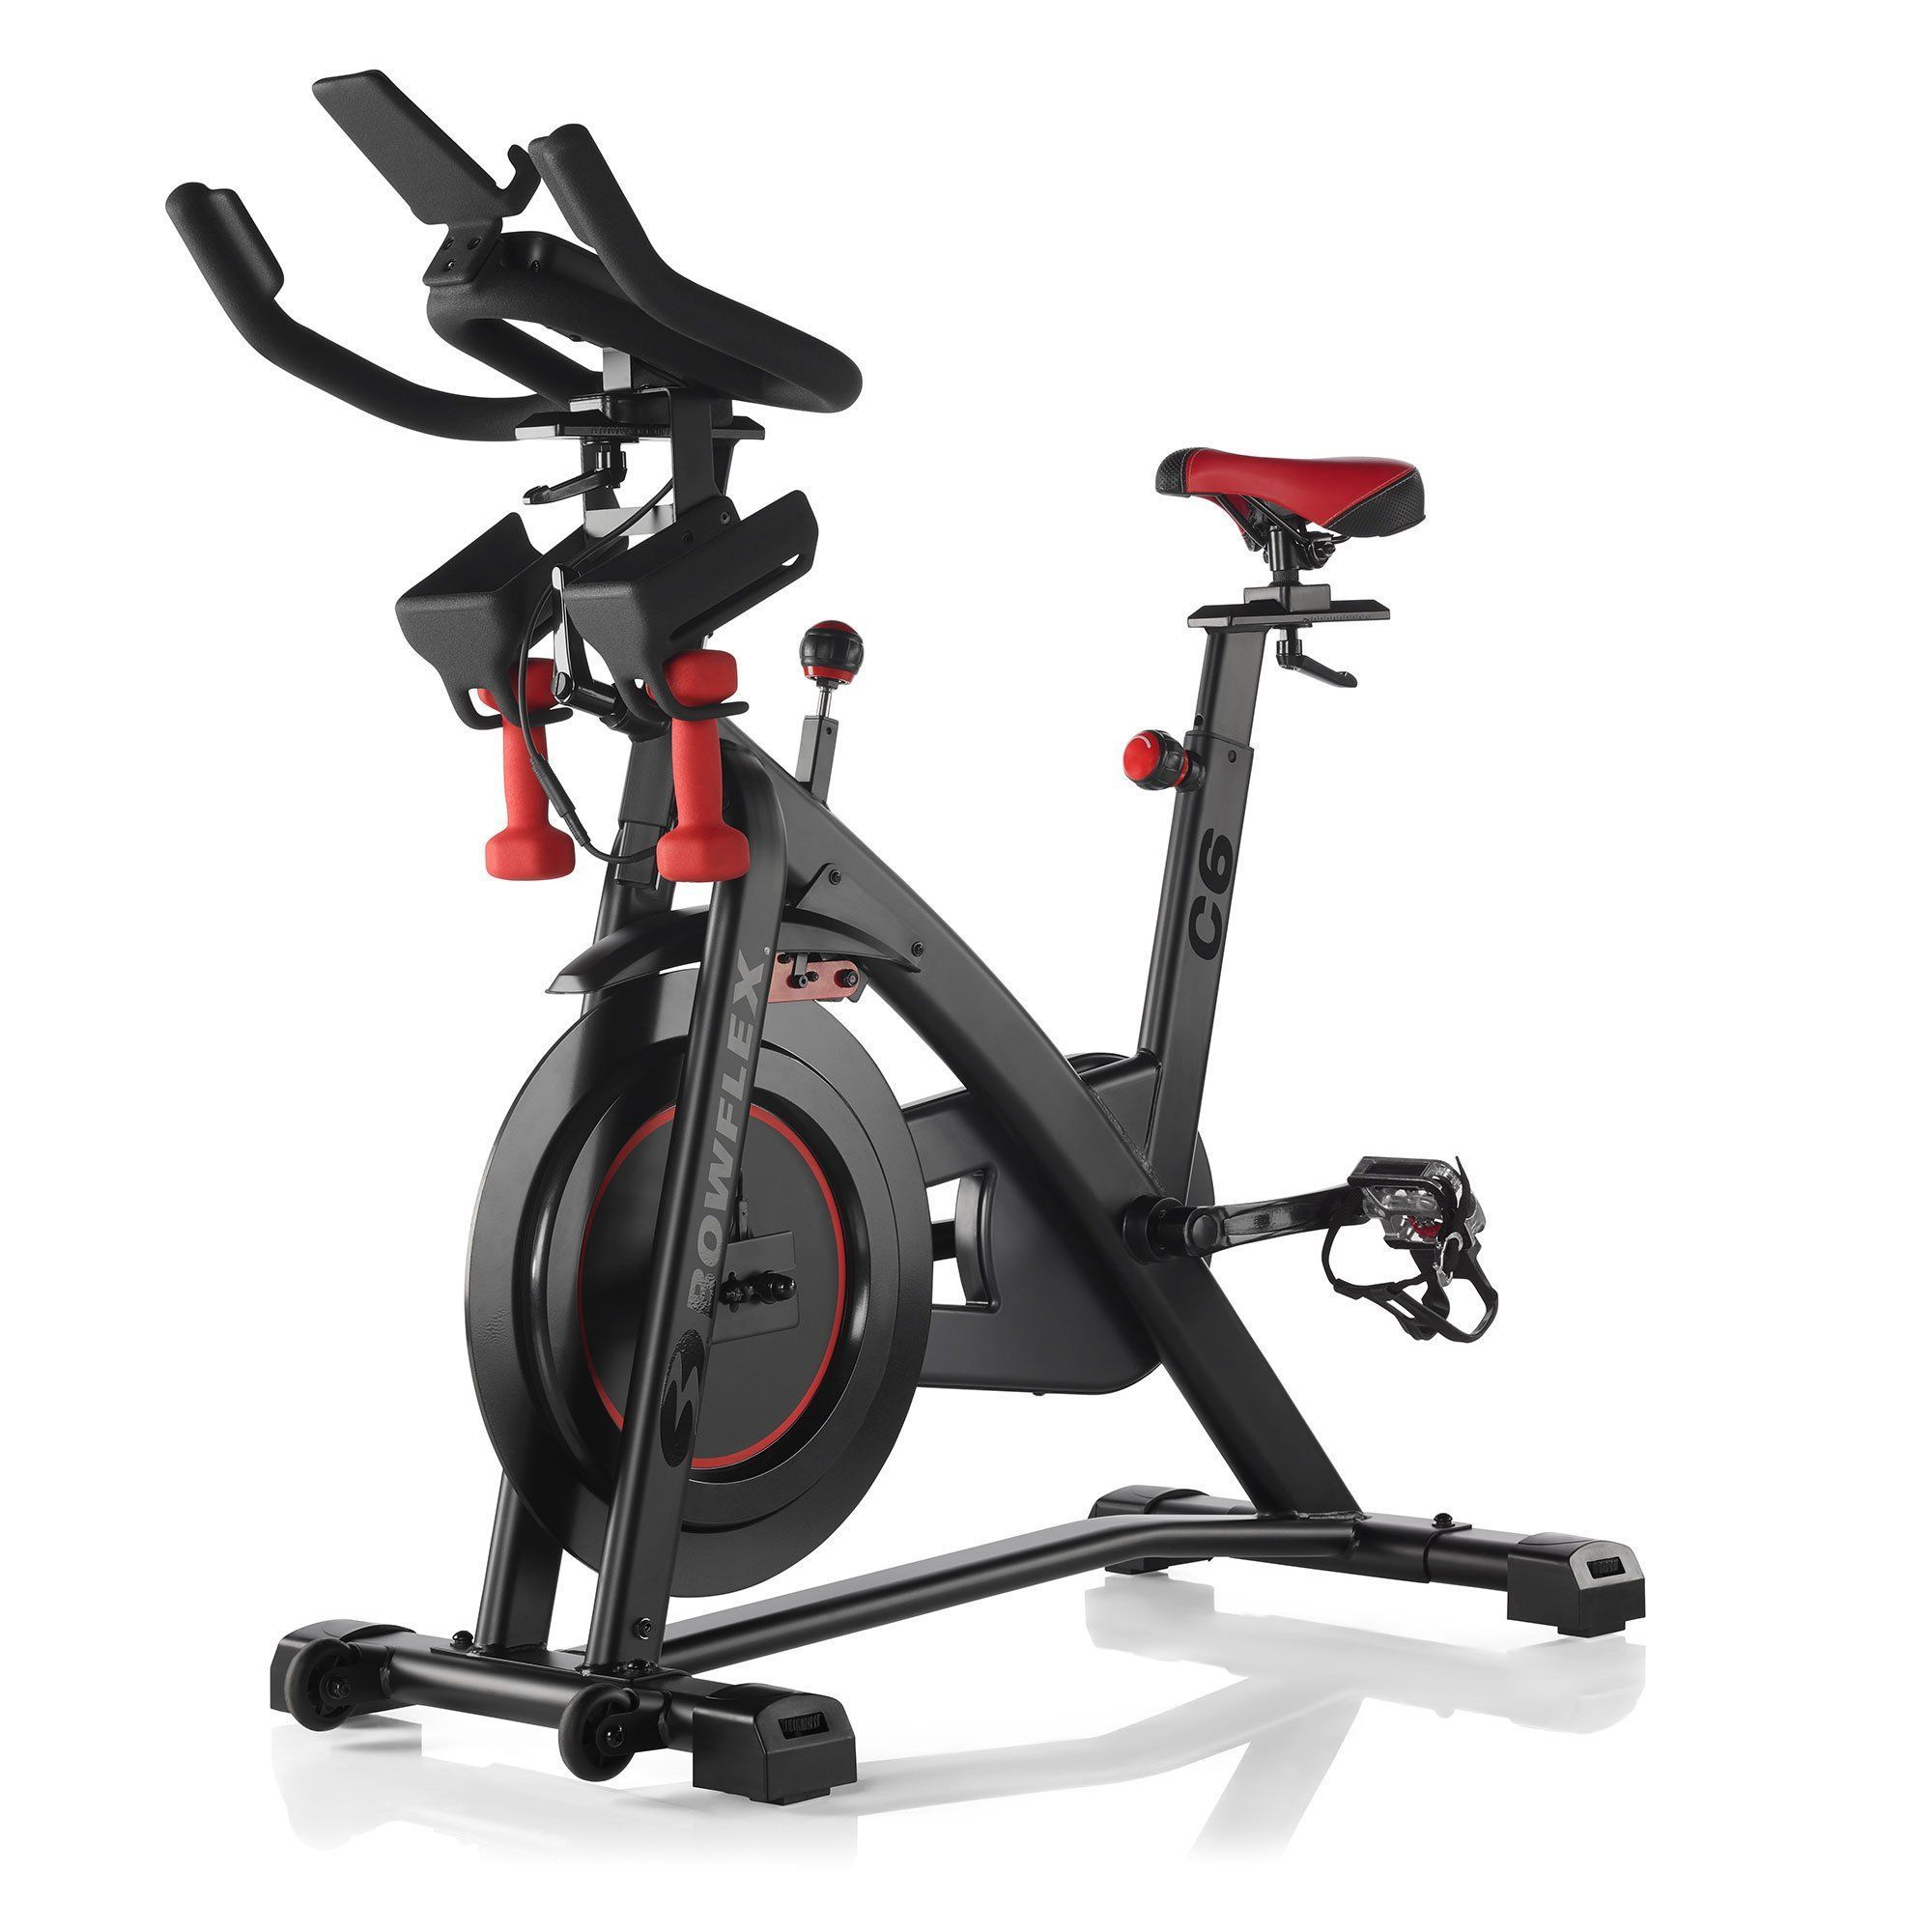 C6 Indoor Exercise Bike Spin Bike Workouts Spin Bike Workouts Bosu Ball Cycling Motivation Swimming Wor Biking Workout Indoor Bike Workouts Cheap Exercise Bike